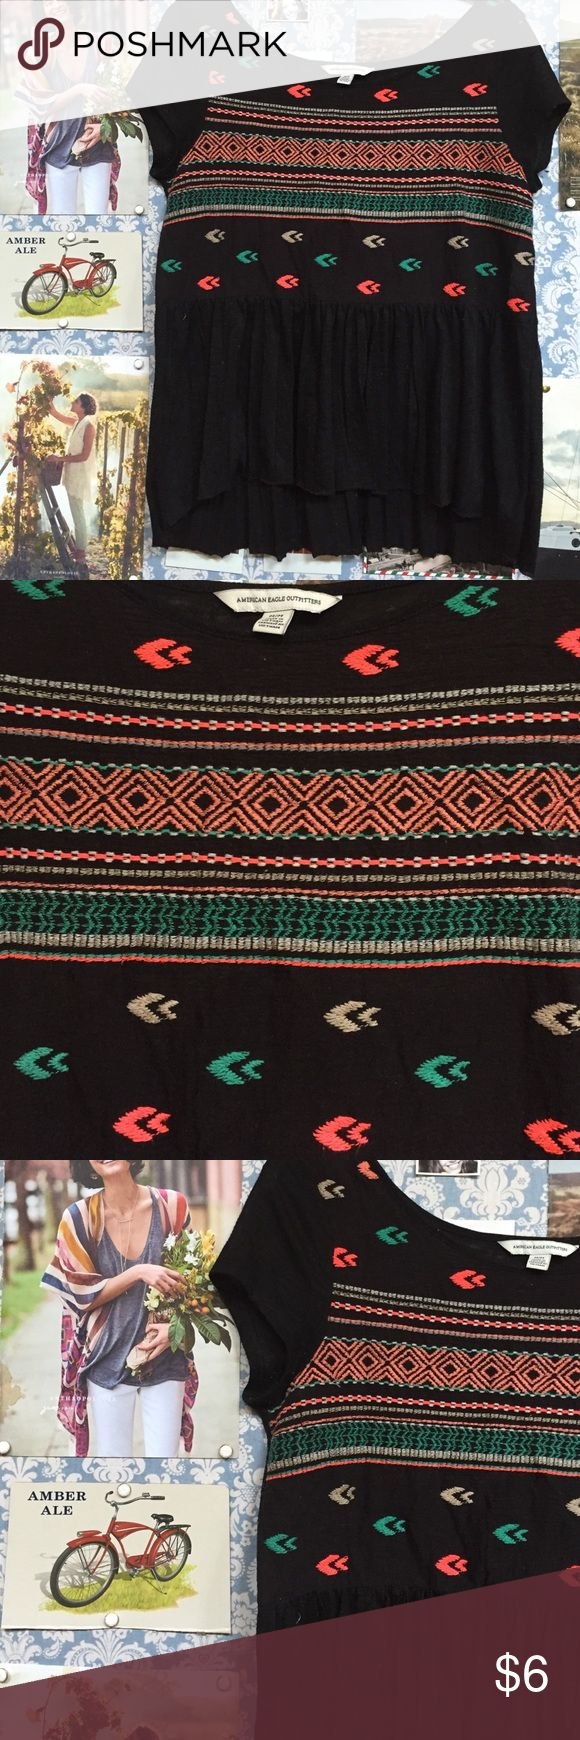 American Eagle Outfitters Aztec Top This American Eagle top feels like a t-shirt but has a flowy bottom half that almost feels like a little skirt! It has an adorable stitch work across the chest with a bright tribal design. American Eagle Outfitters Tops Blouses